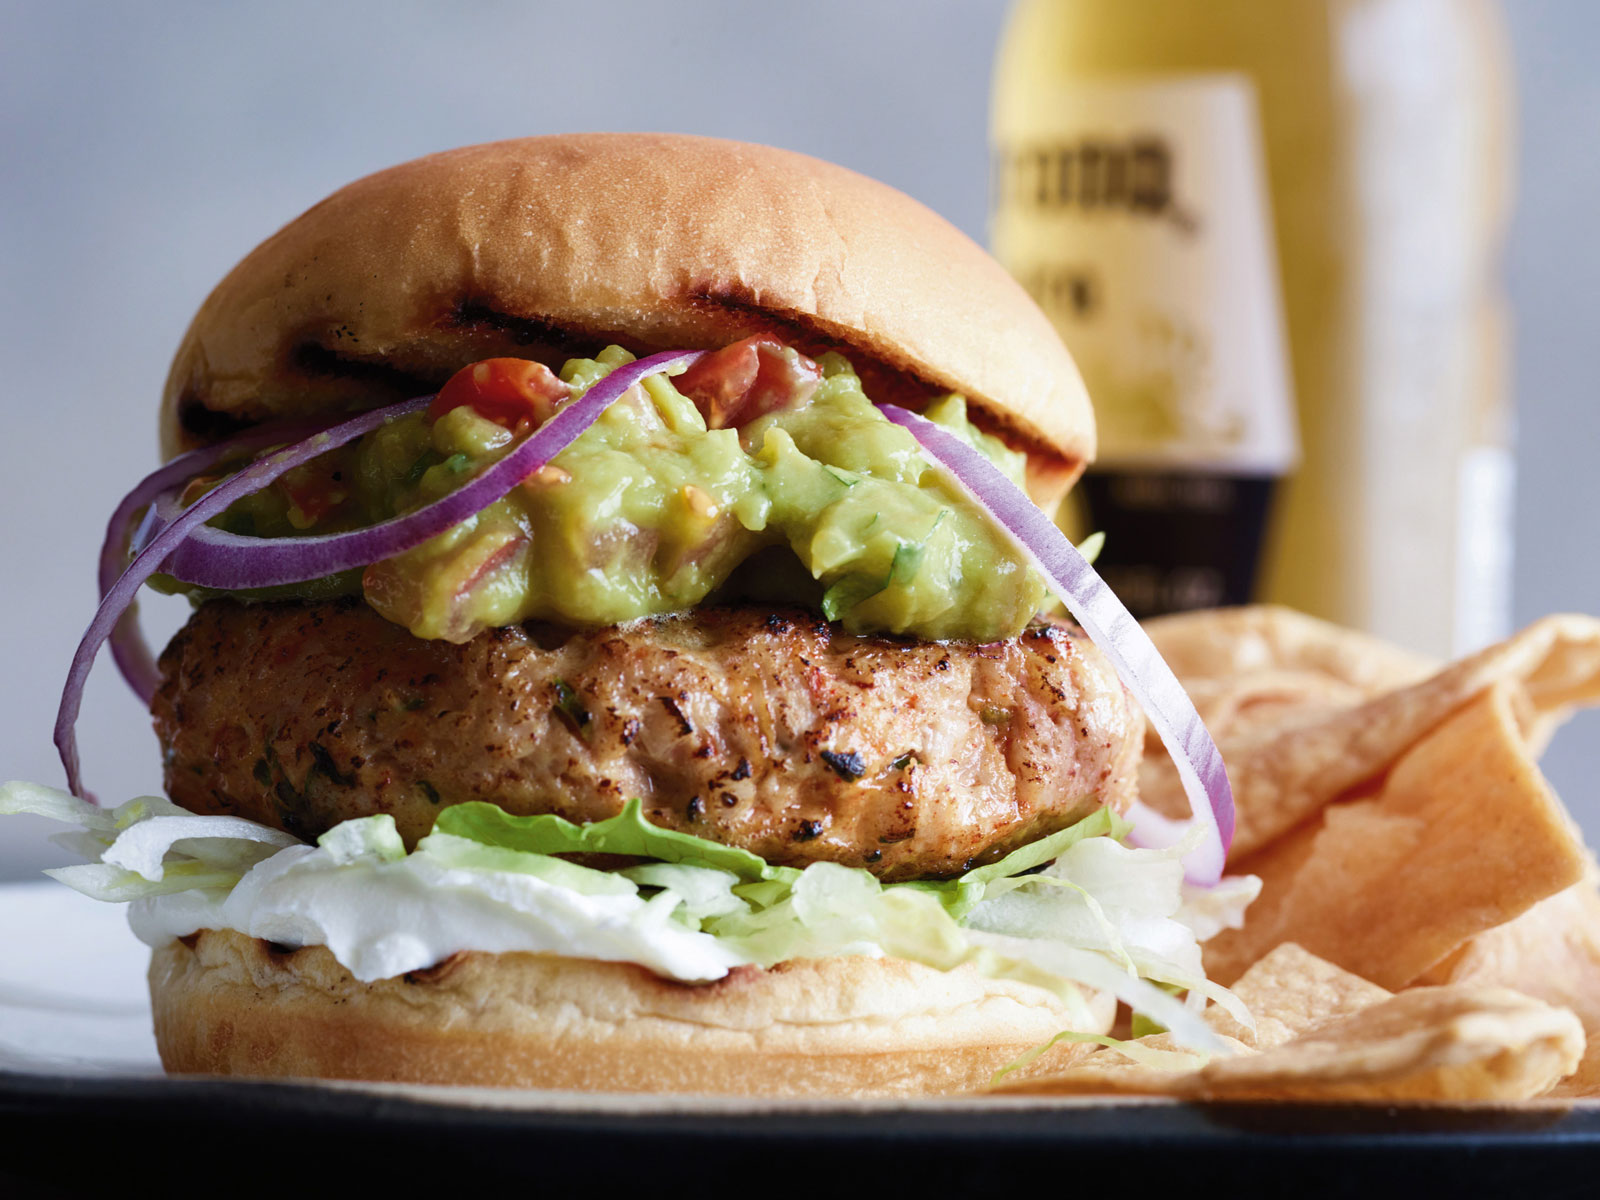 Cheese Belly Chicken Burgers with Sour Cream and Guacamole